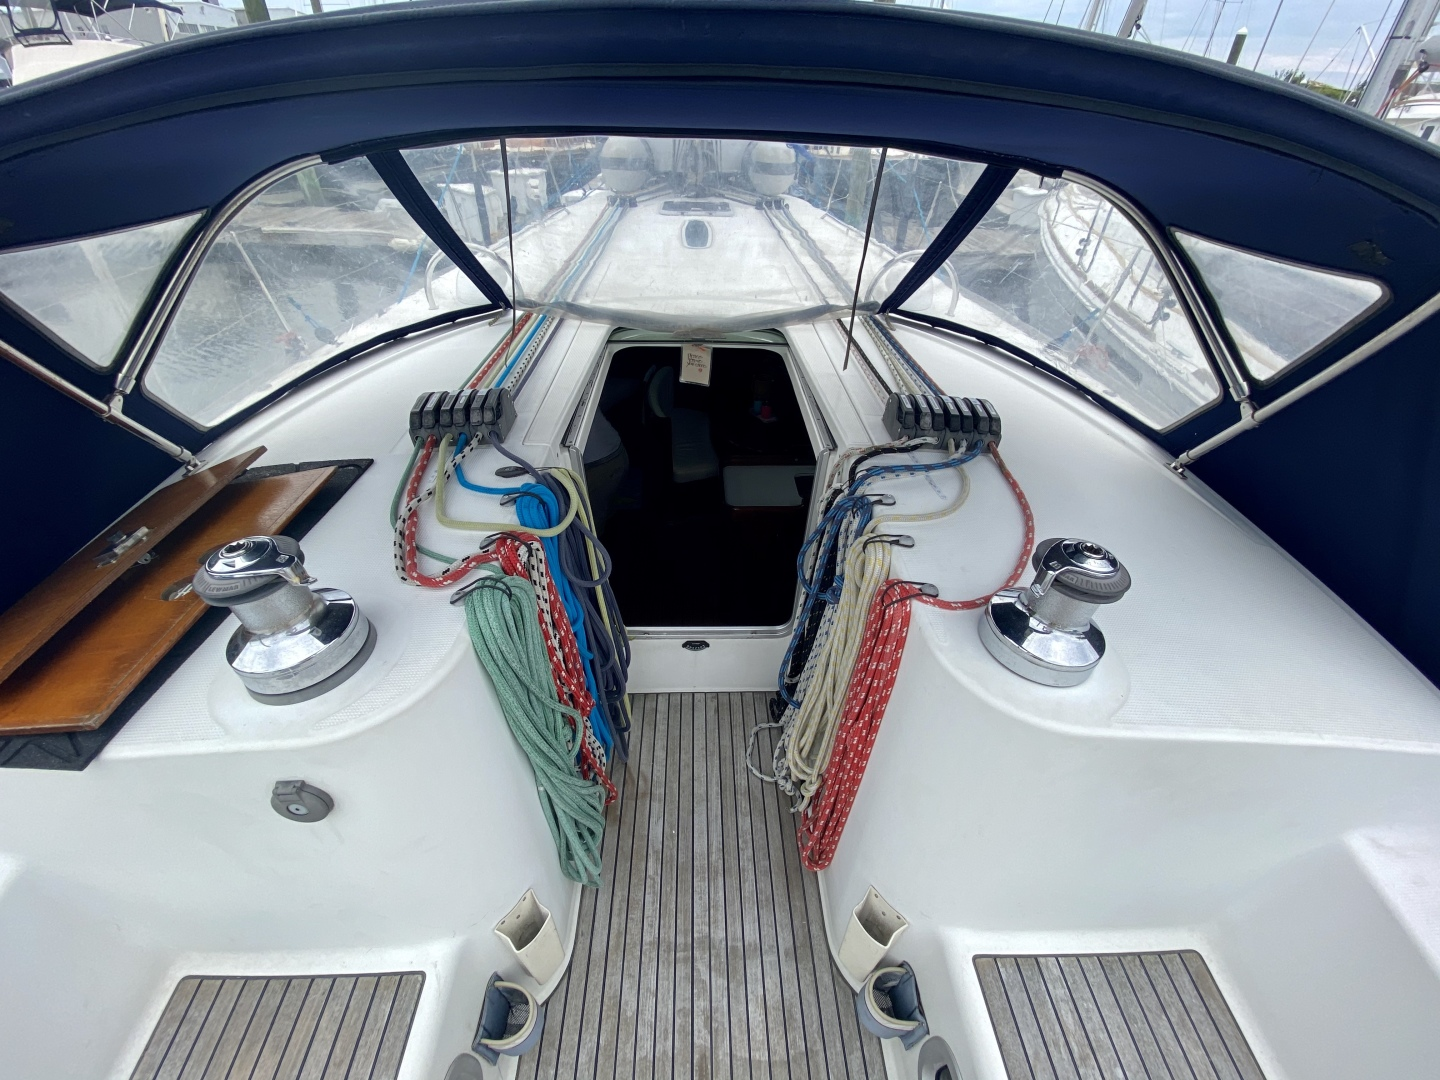 Beneteau-First 47.7 2004 -Portsmouth-Rhode Island-United States-Companionway-1551512 | Thumbnail